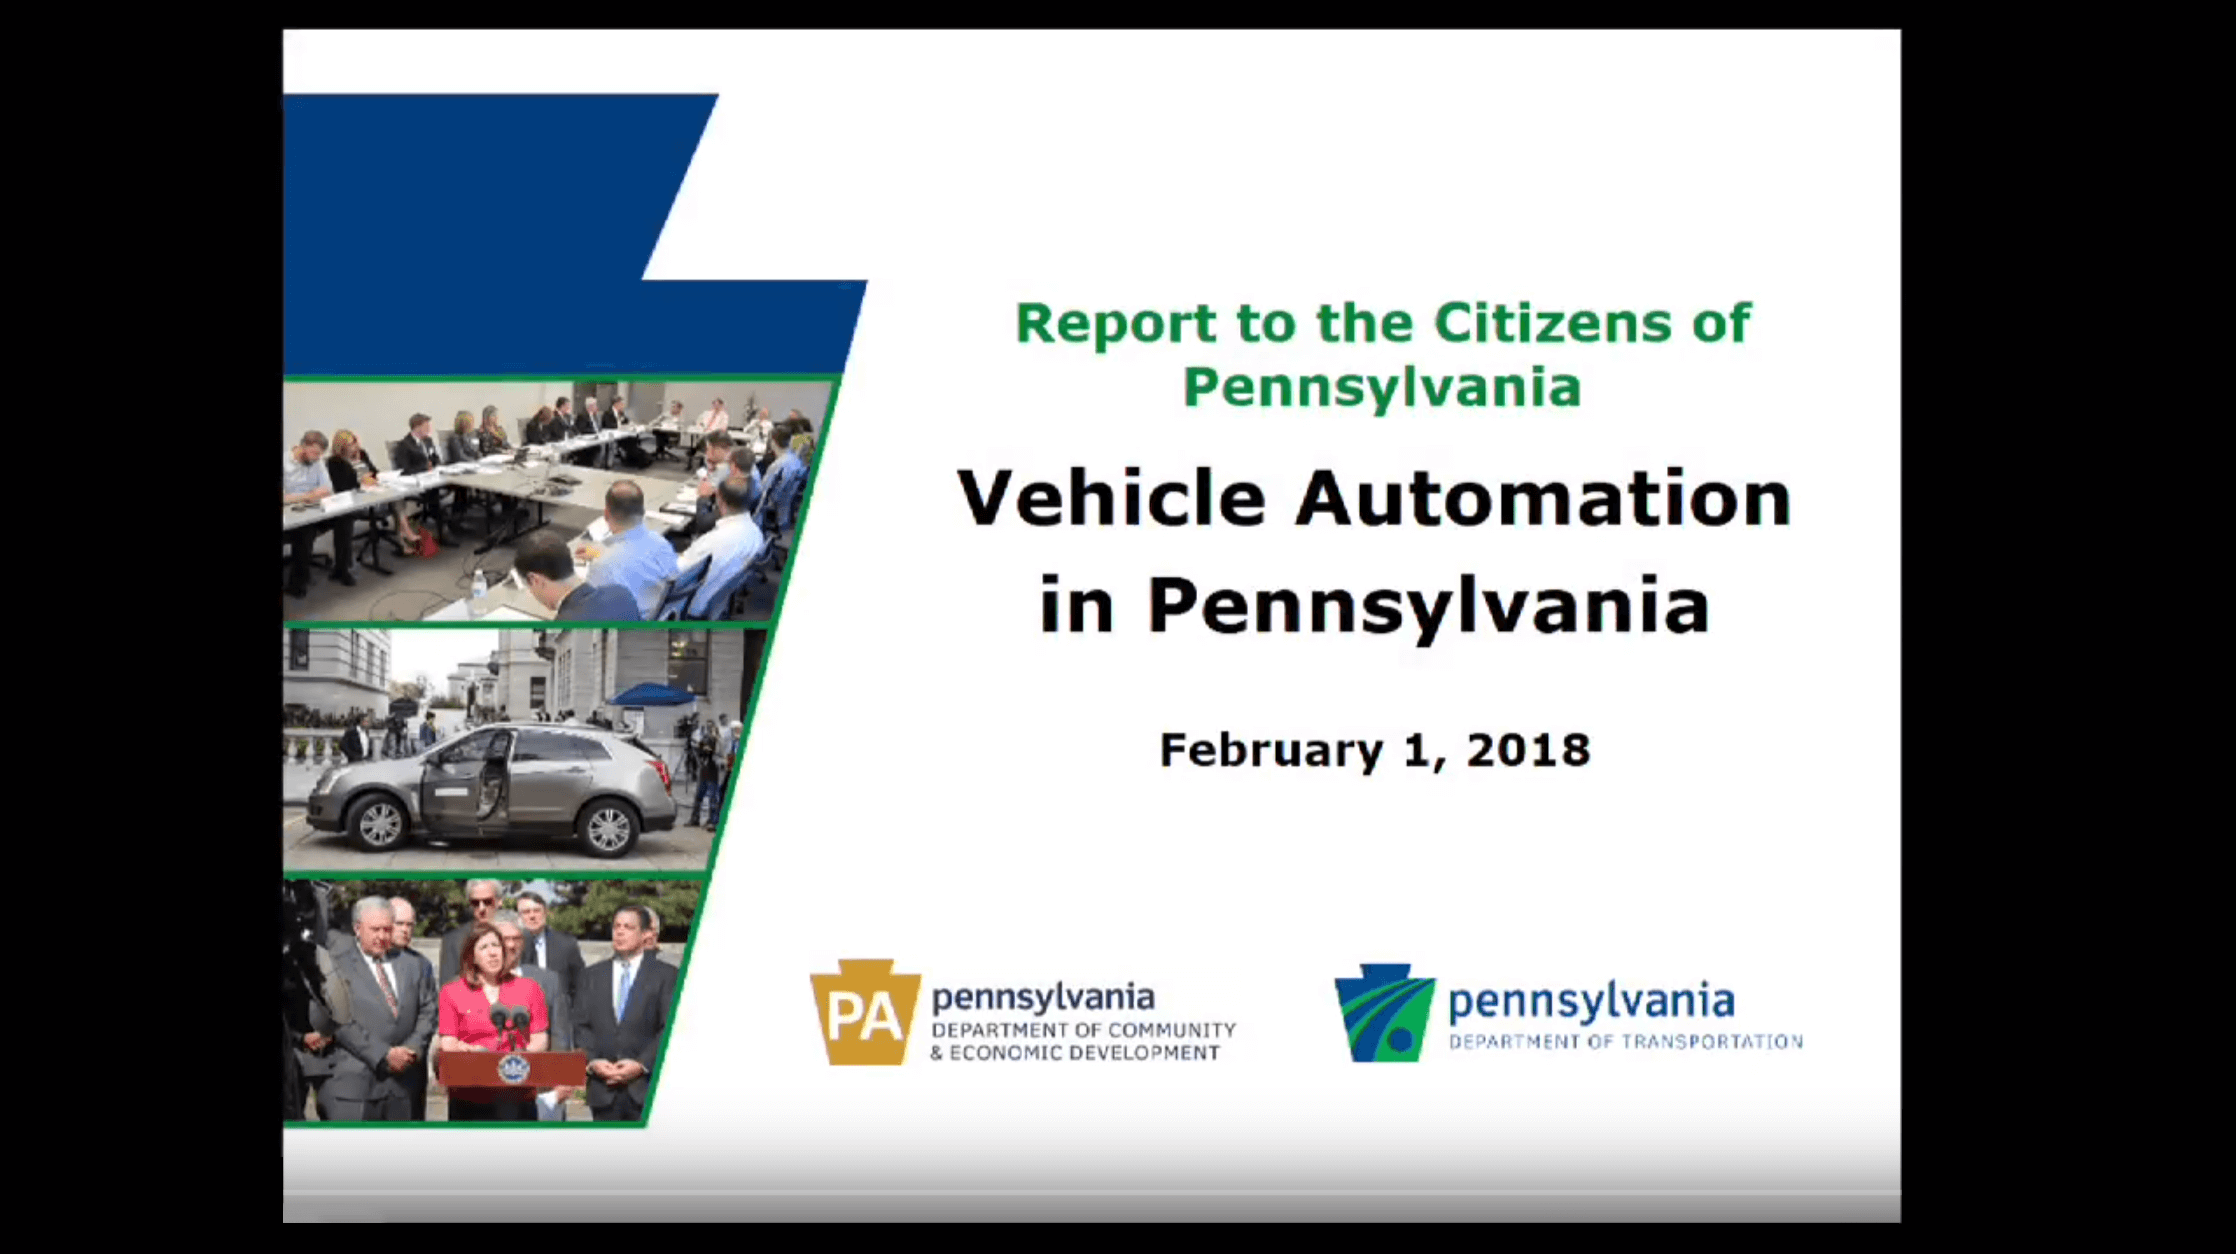 Vehicle Automation in Pennsylvania